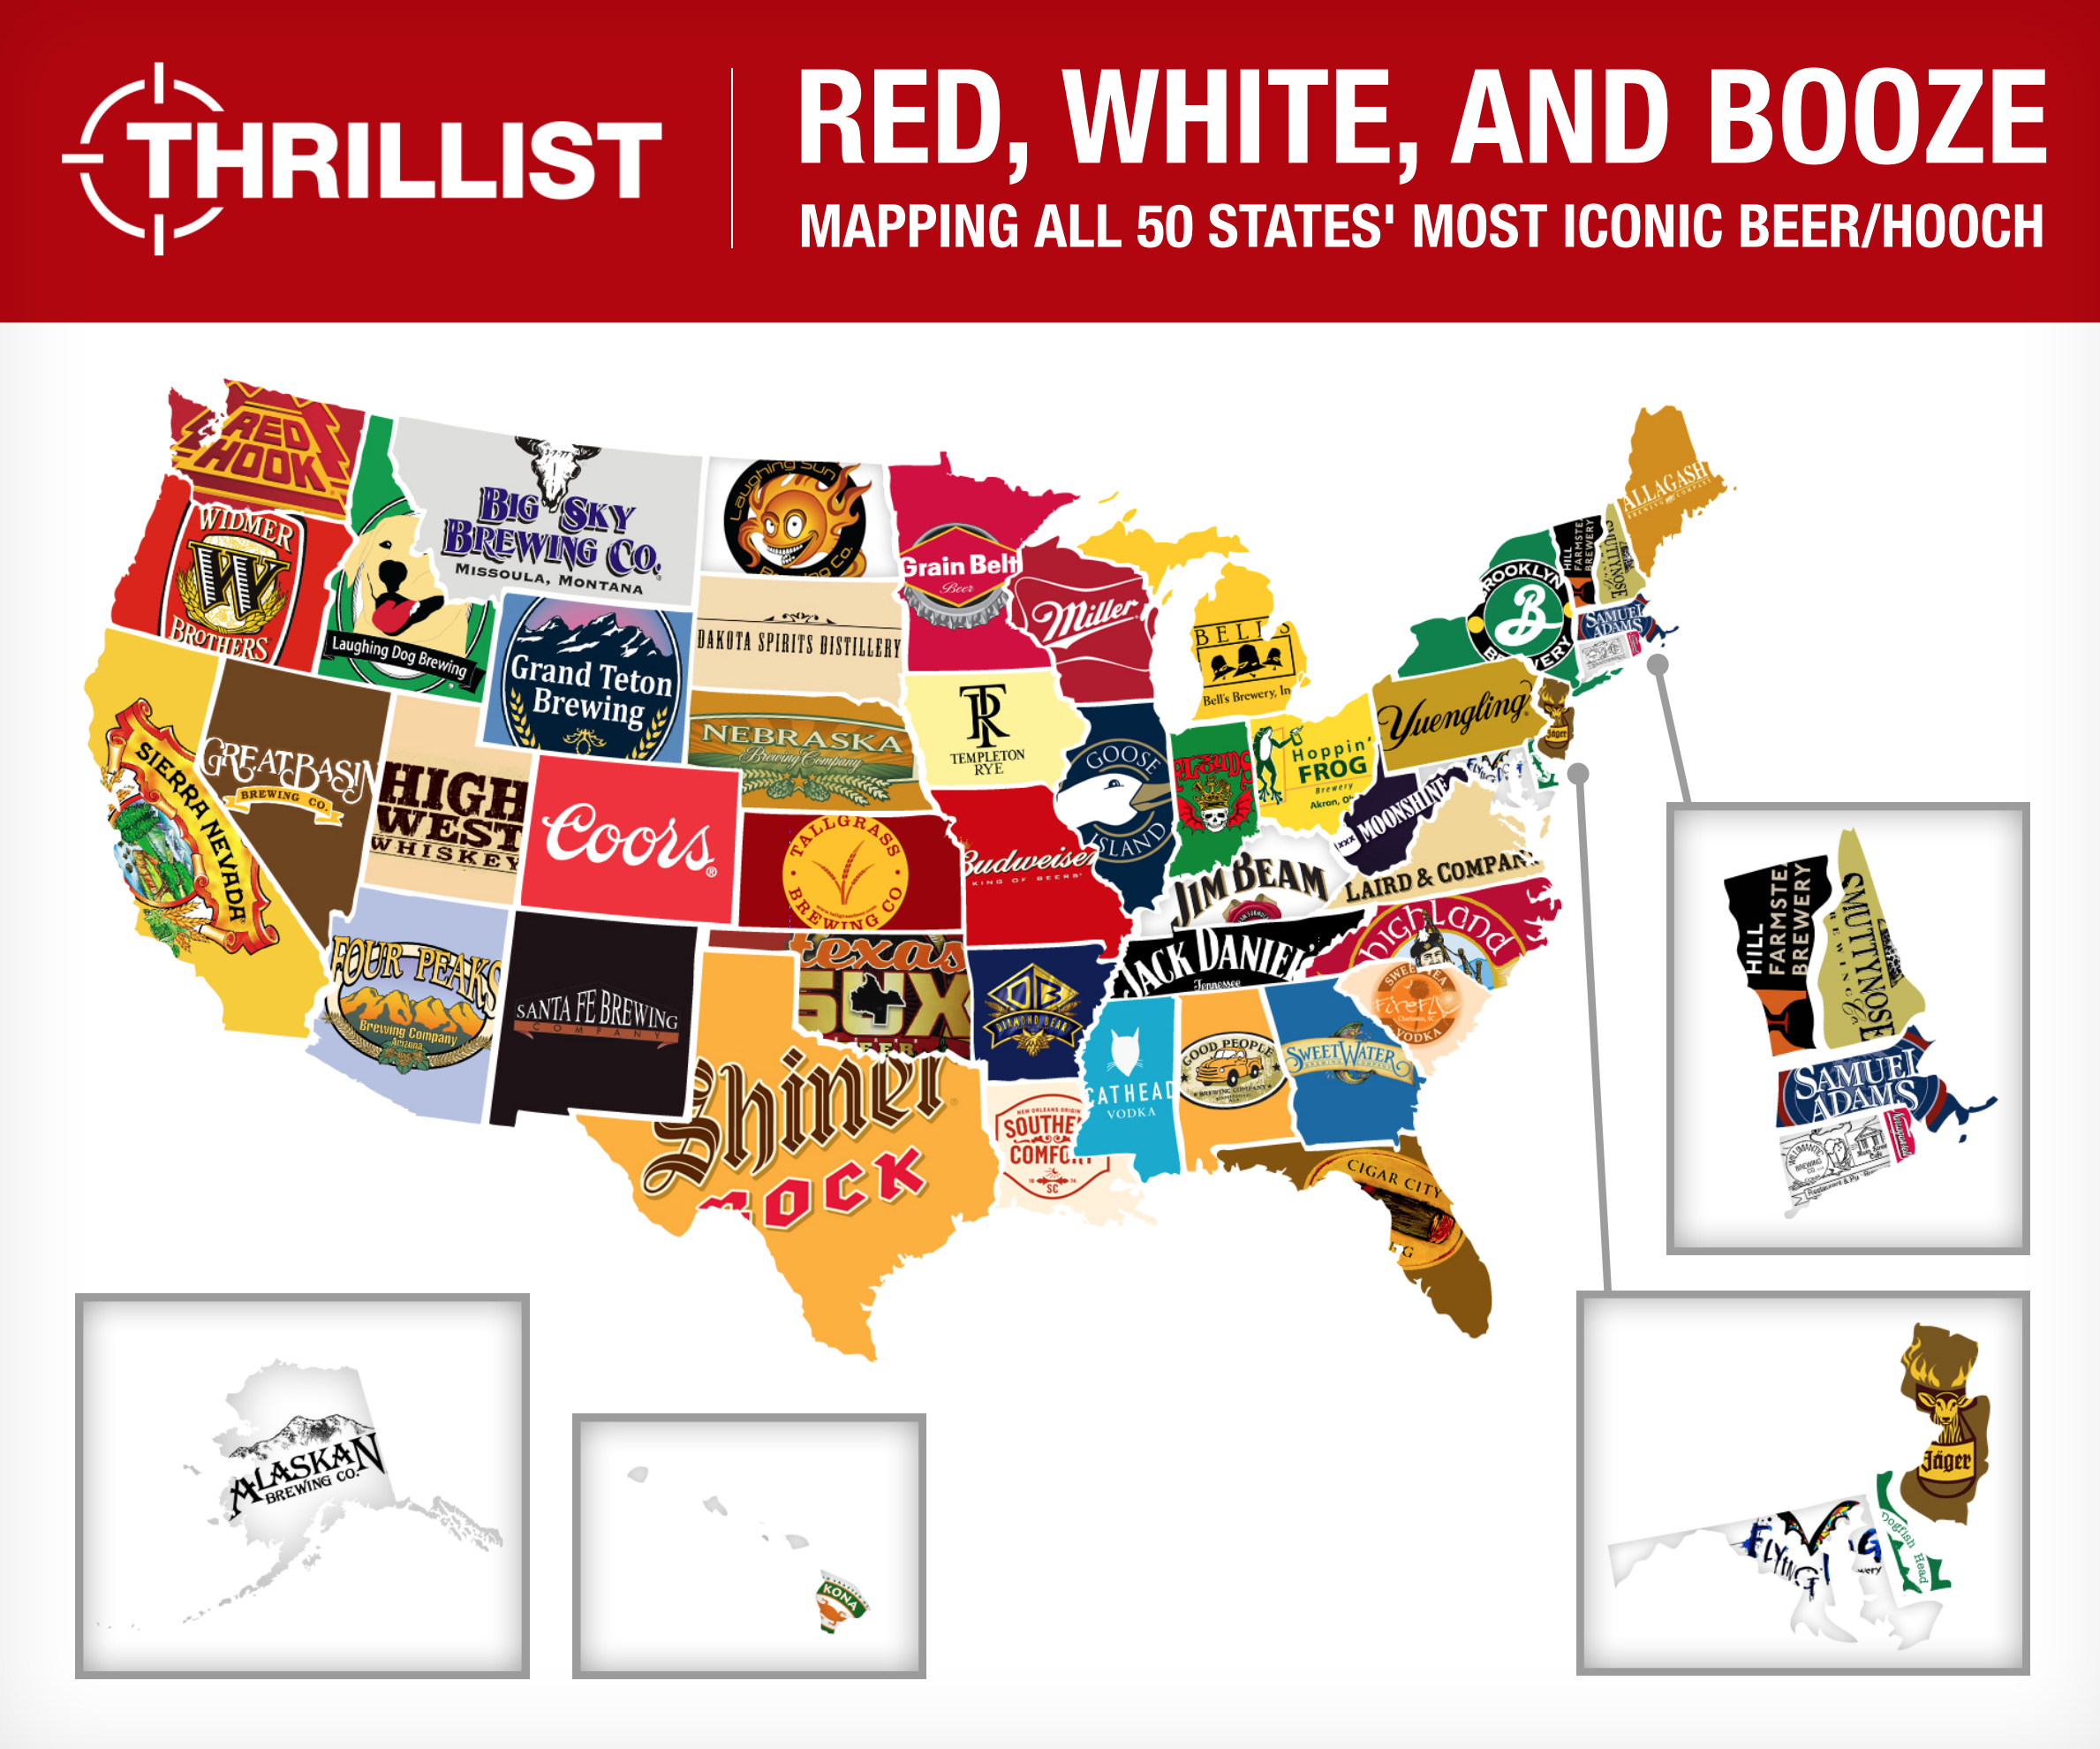 Red, White and Booze from Thrillist.